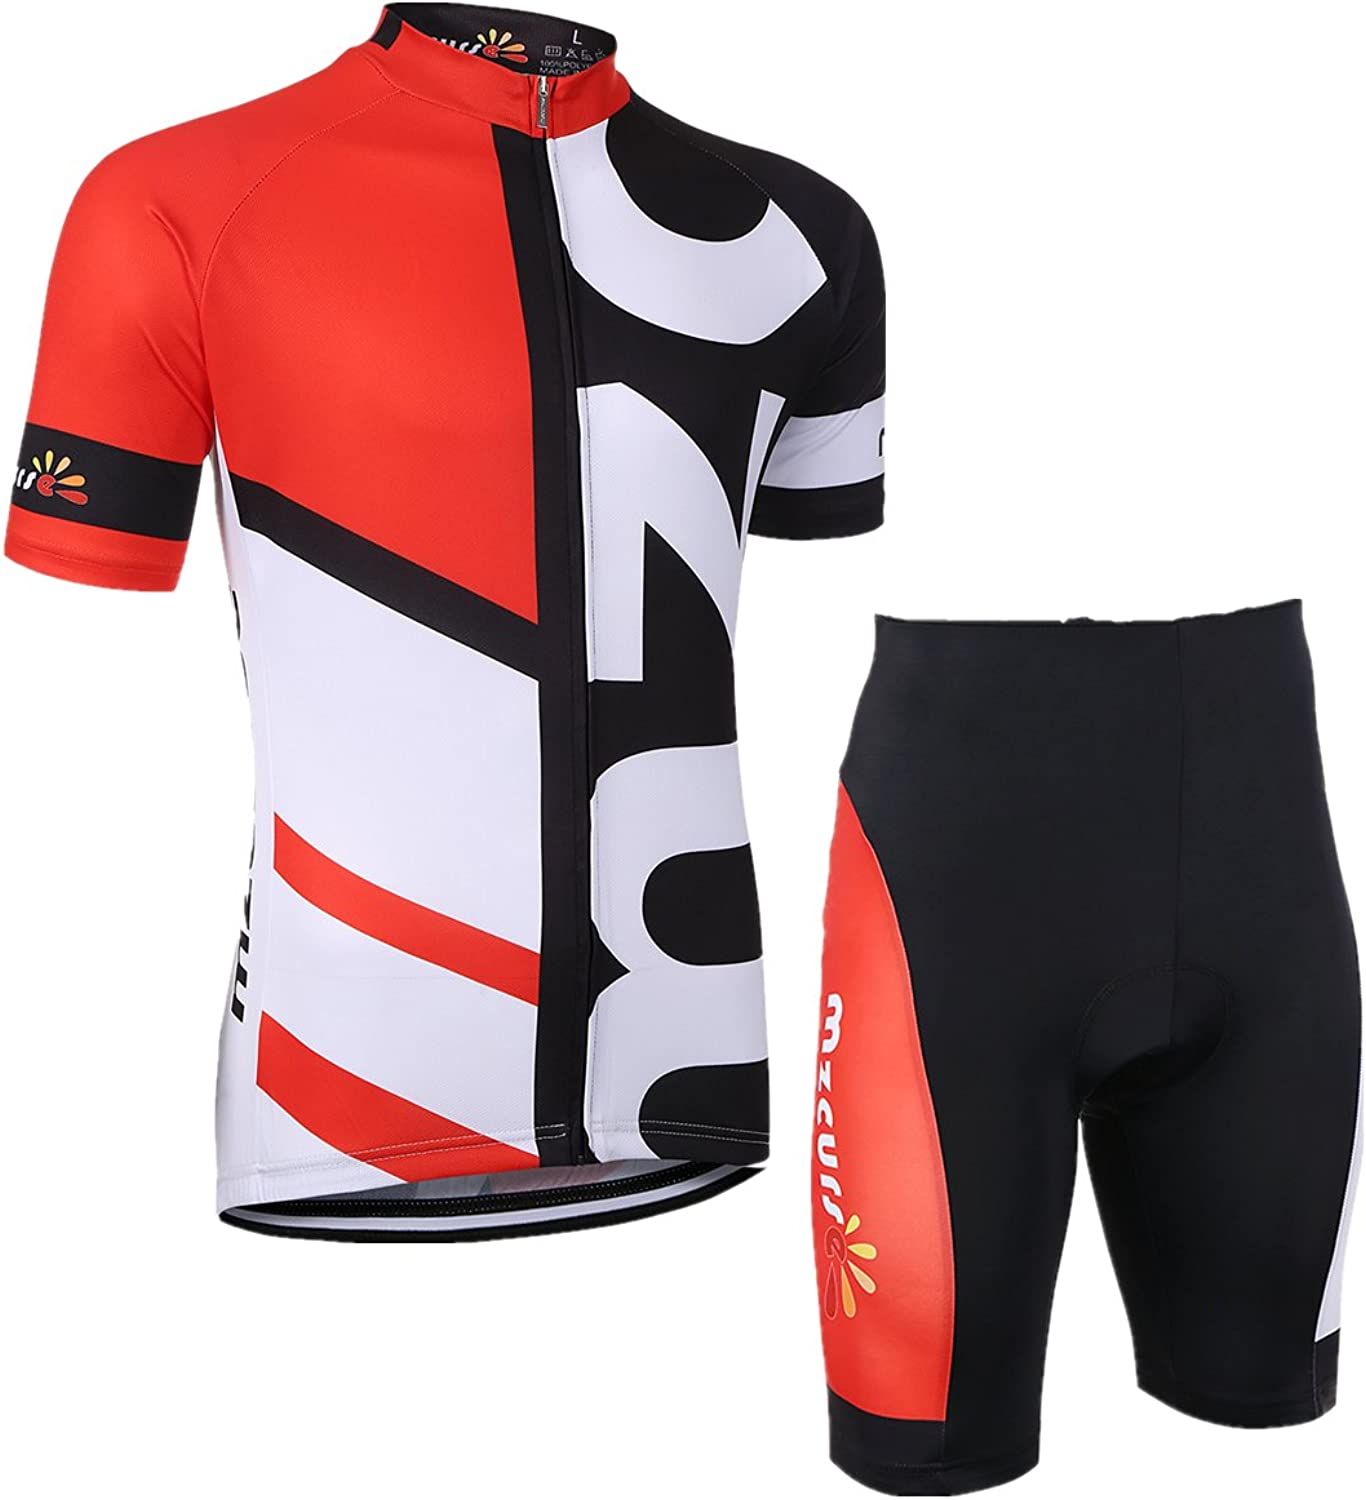 more photos a9ea6 b431b Mzcurse Men's Outdoor Pro Team Short Sleeve Cycling Jersey ...